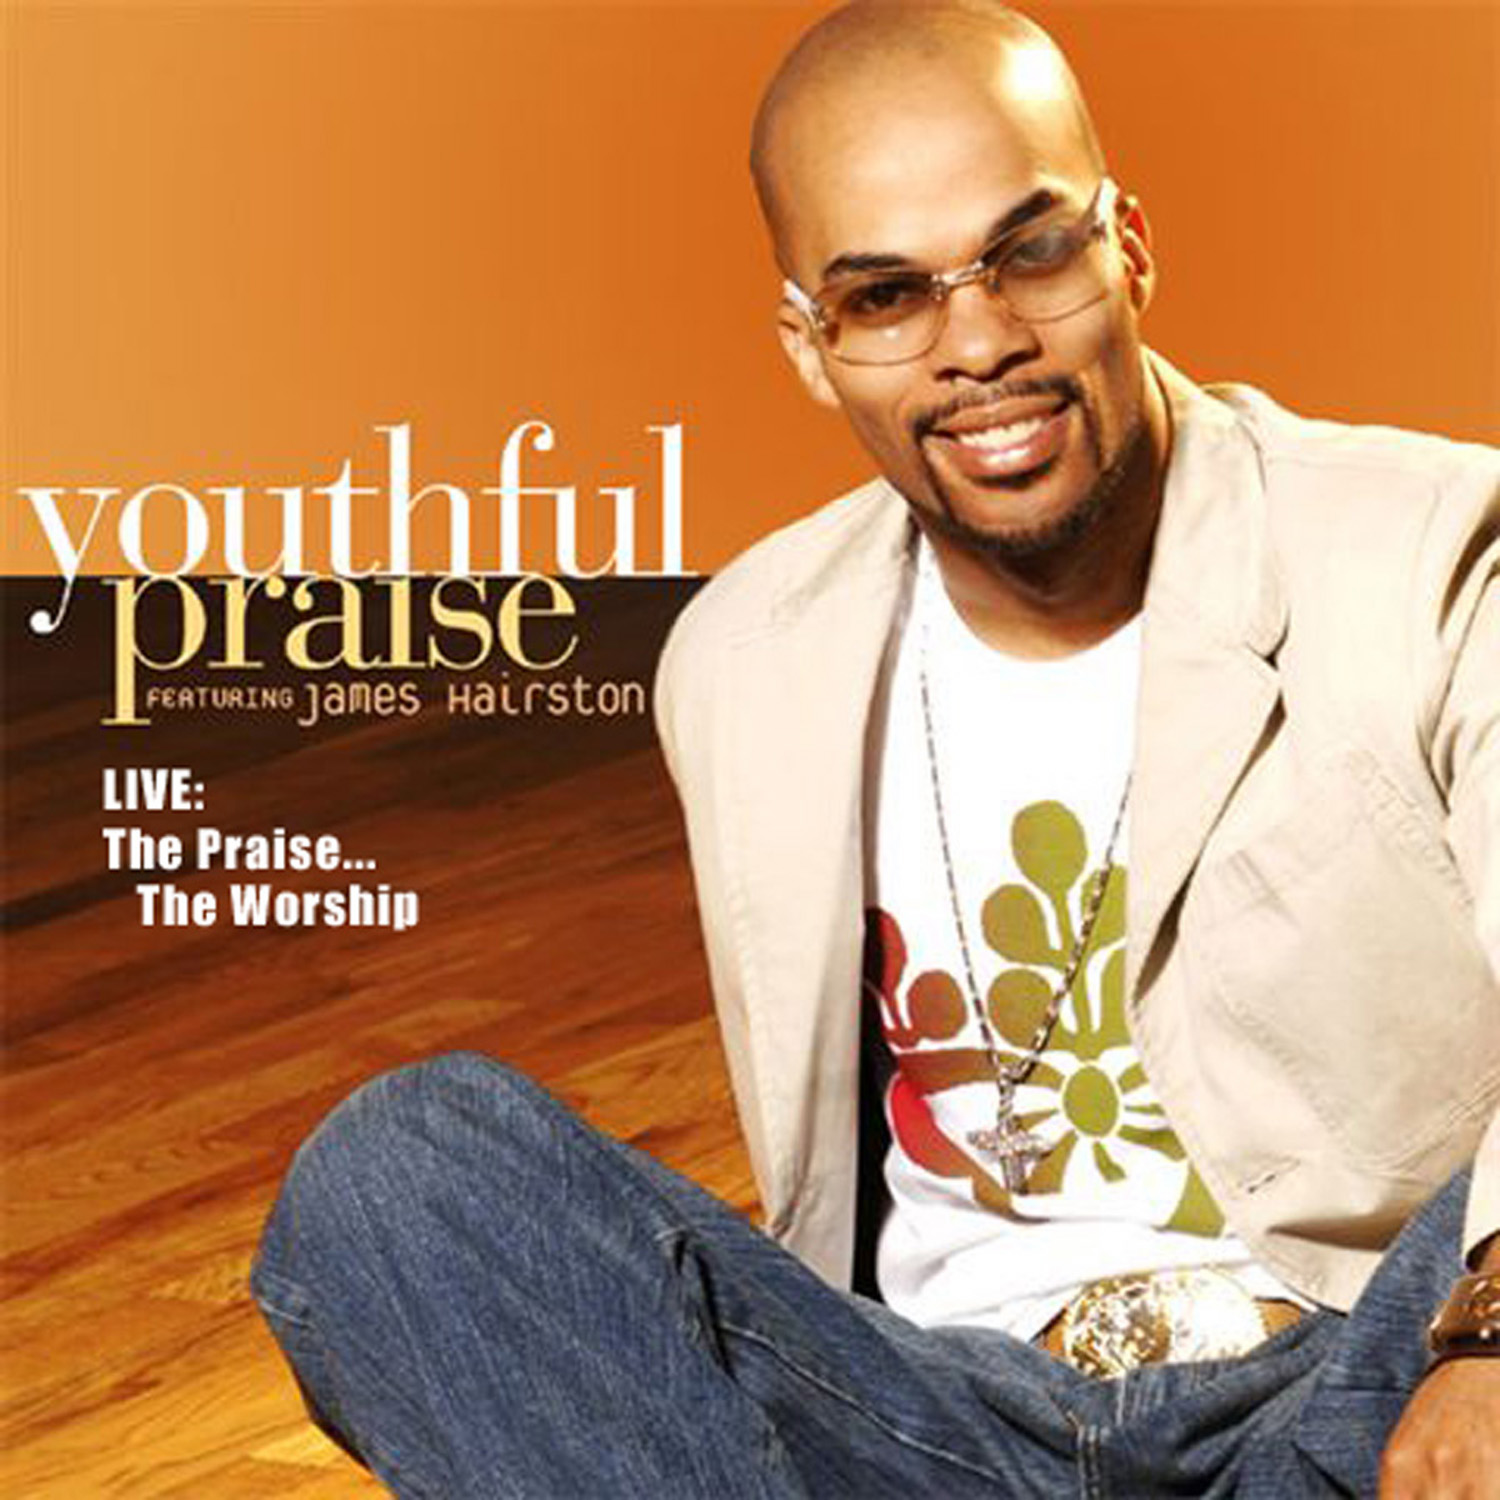 James Hairston & Youthful Praise - Live: The Praise... The Worship